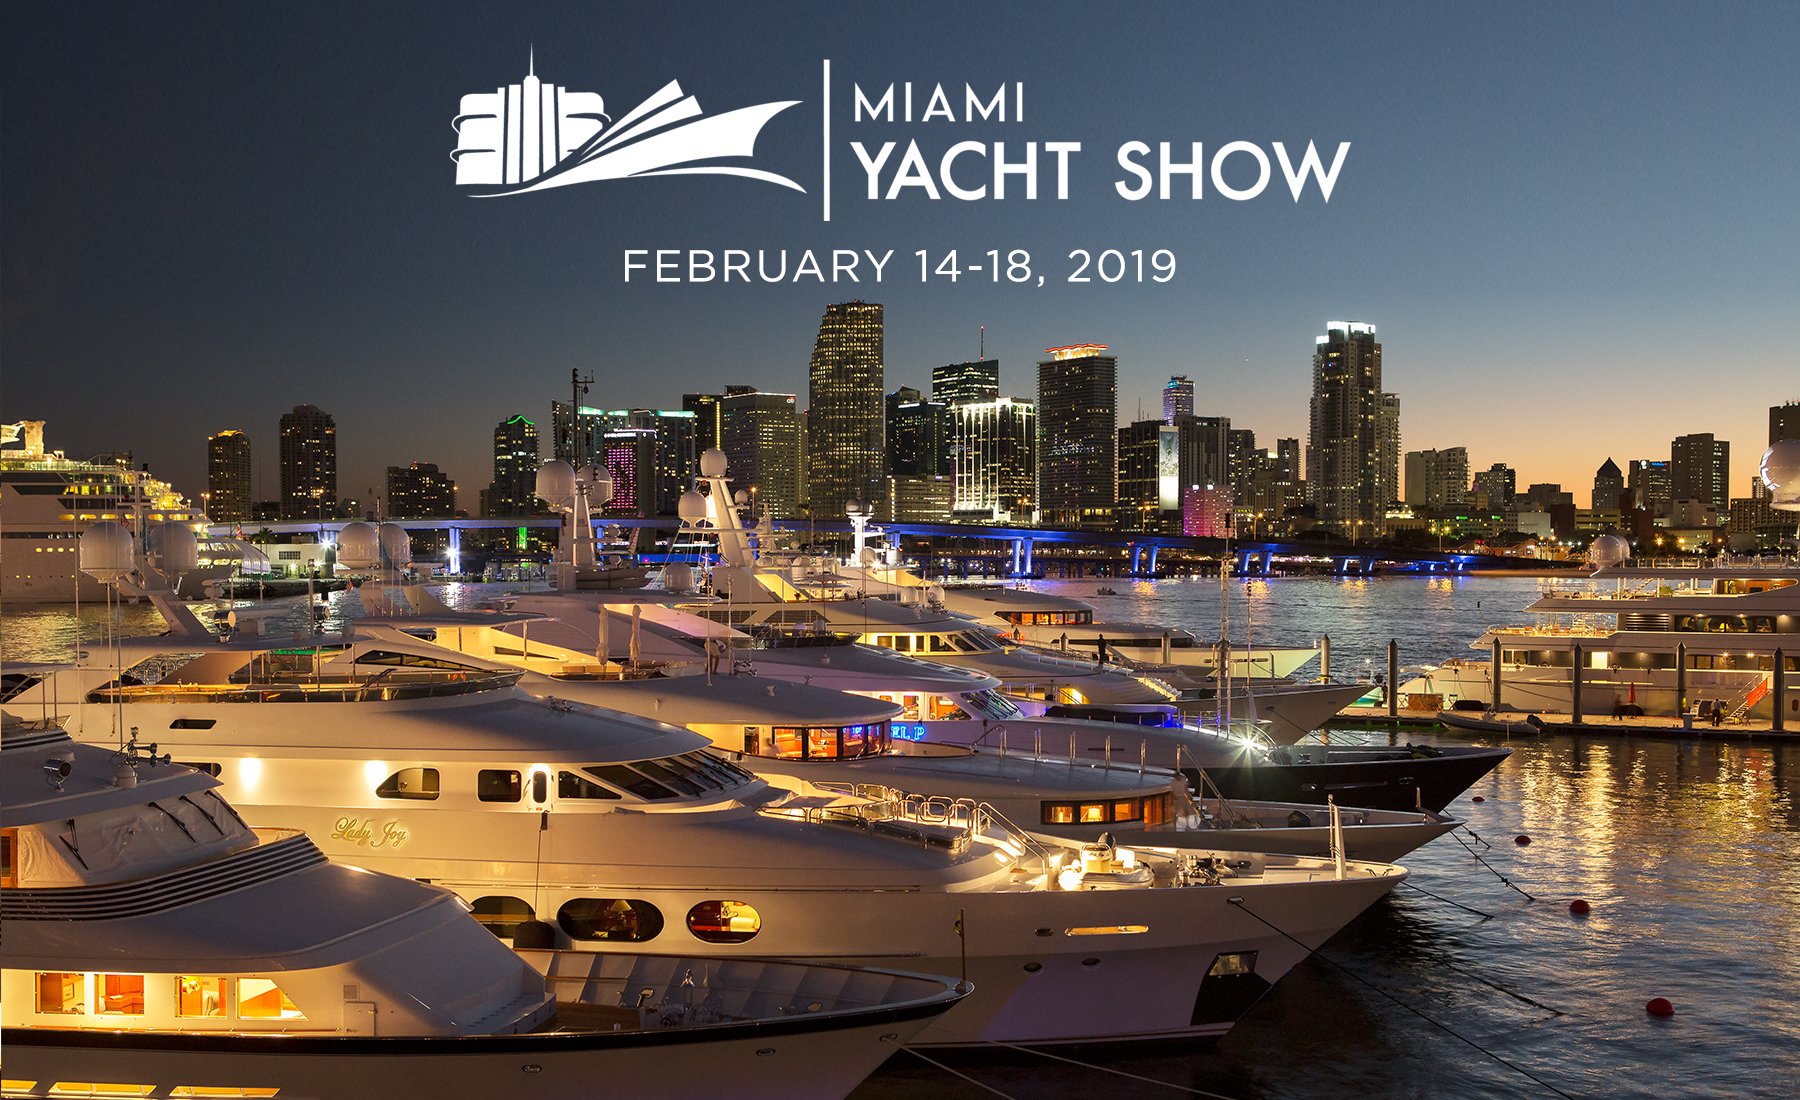 2019 Miami Yacht + Boat Show | New Downtown Location